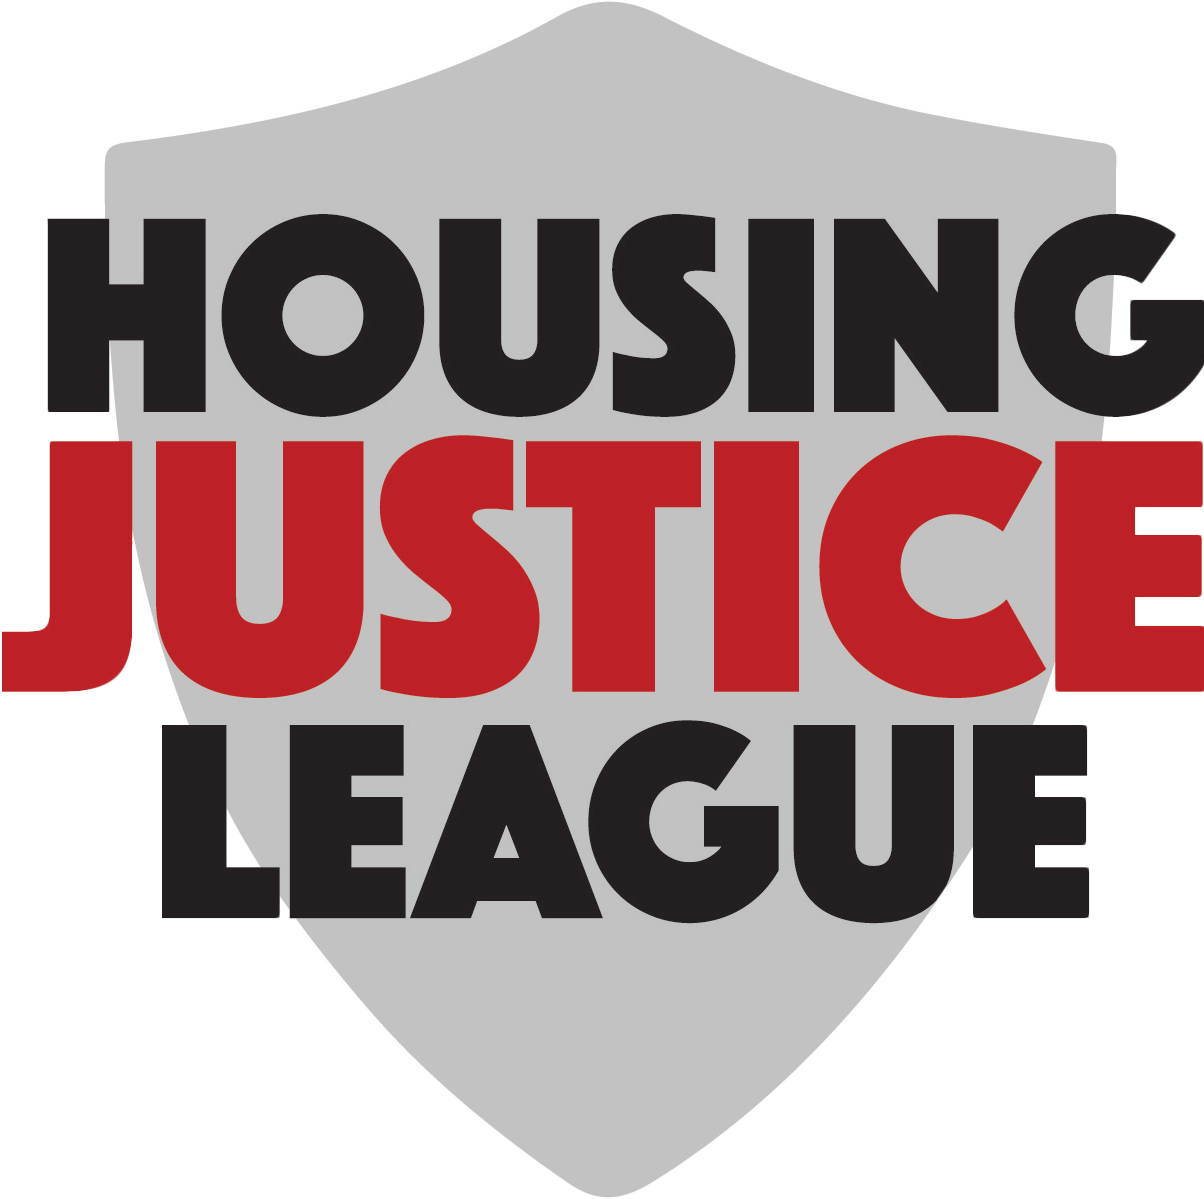 Housing Justice League